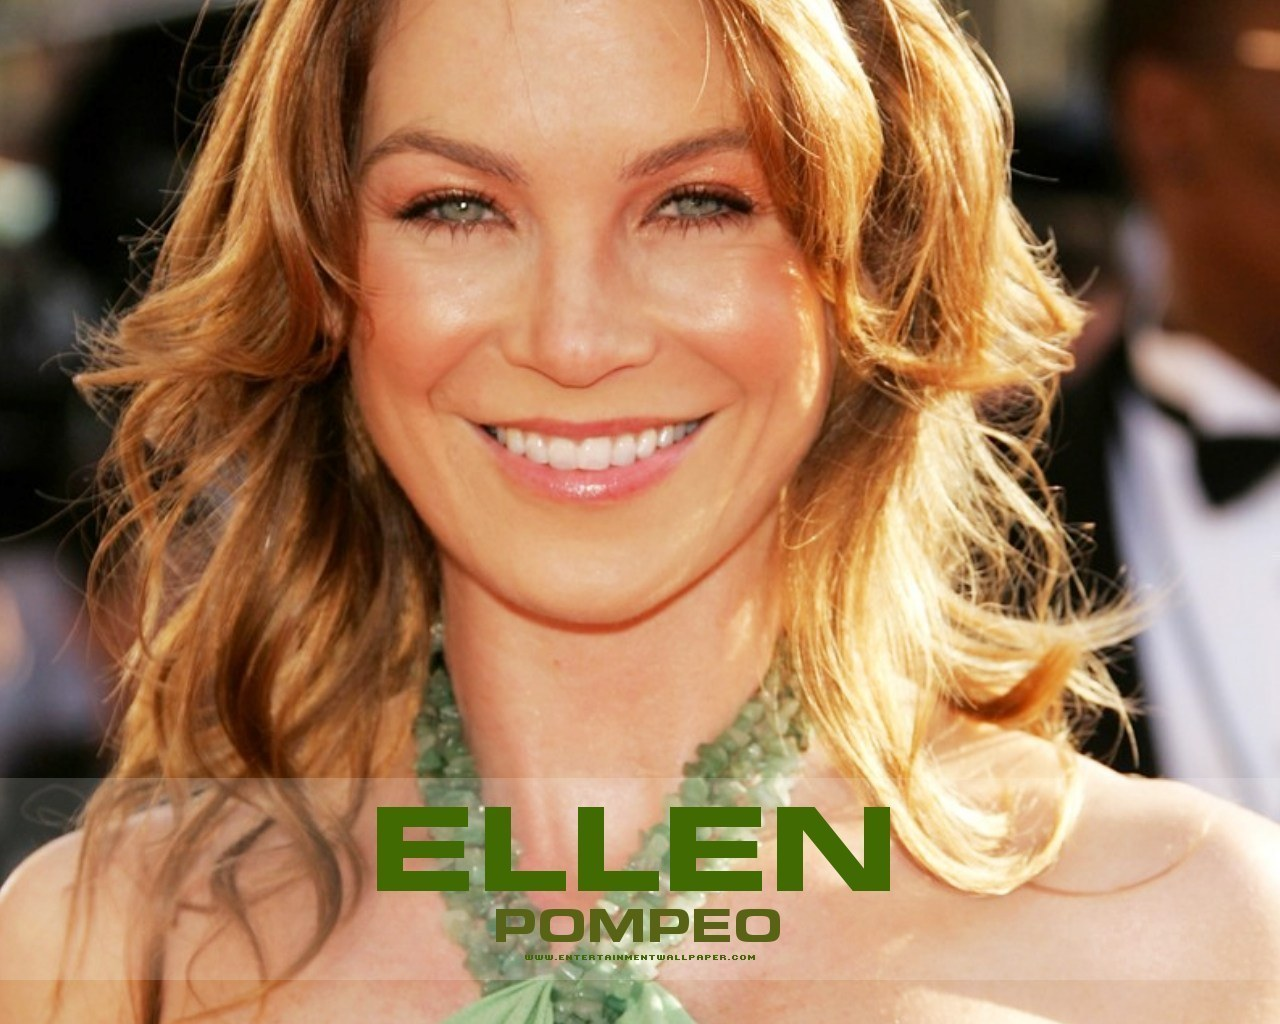 EP - ellen-pompeo wallpaper